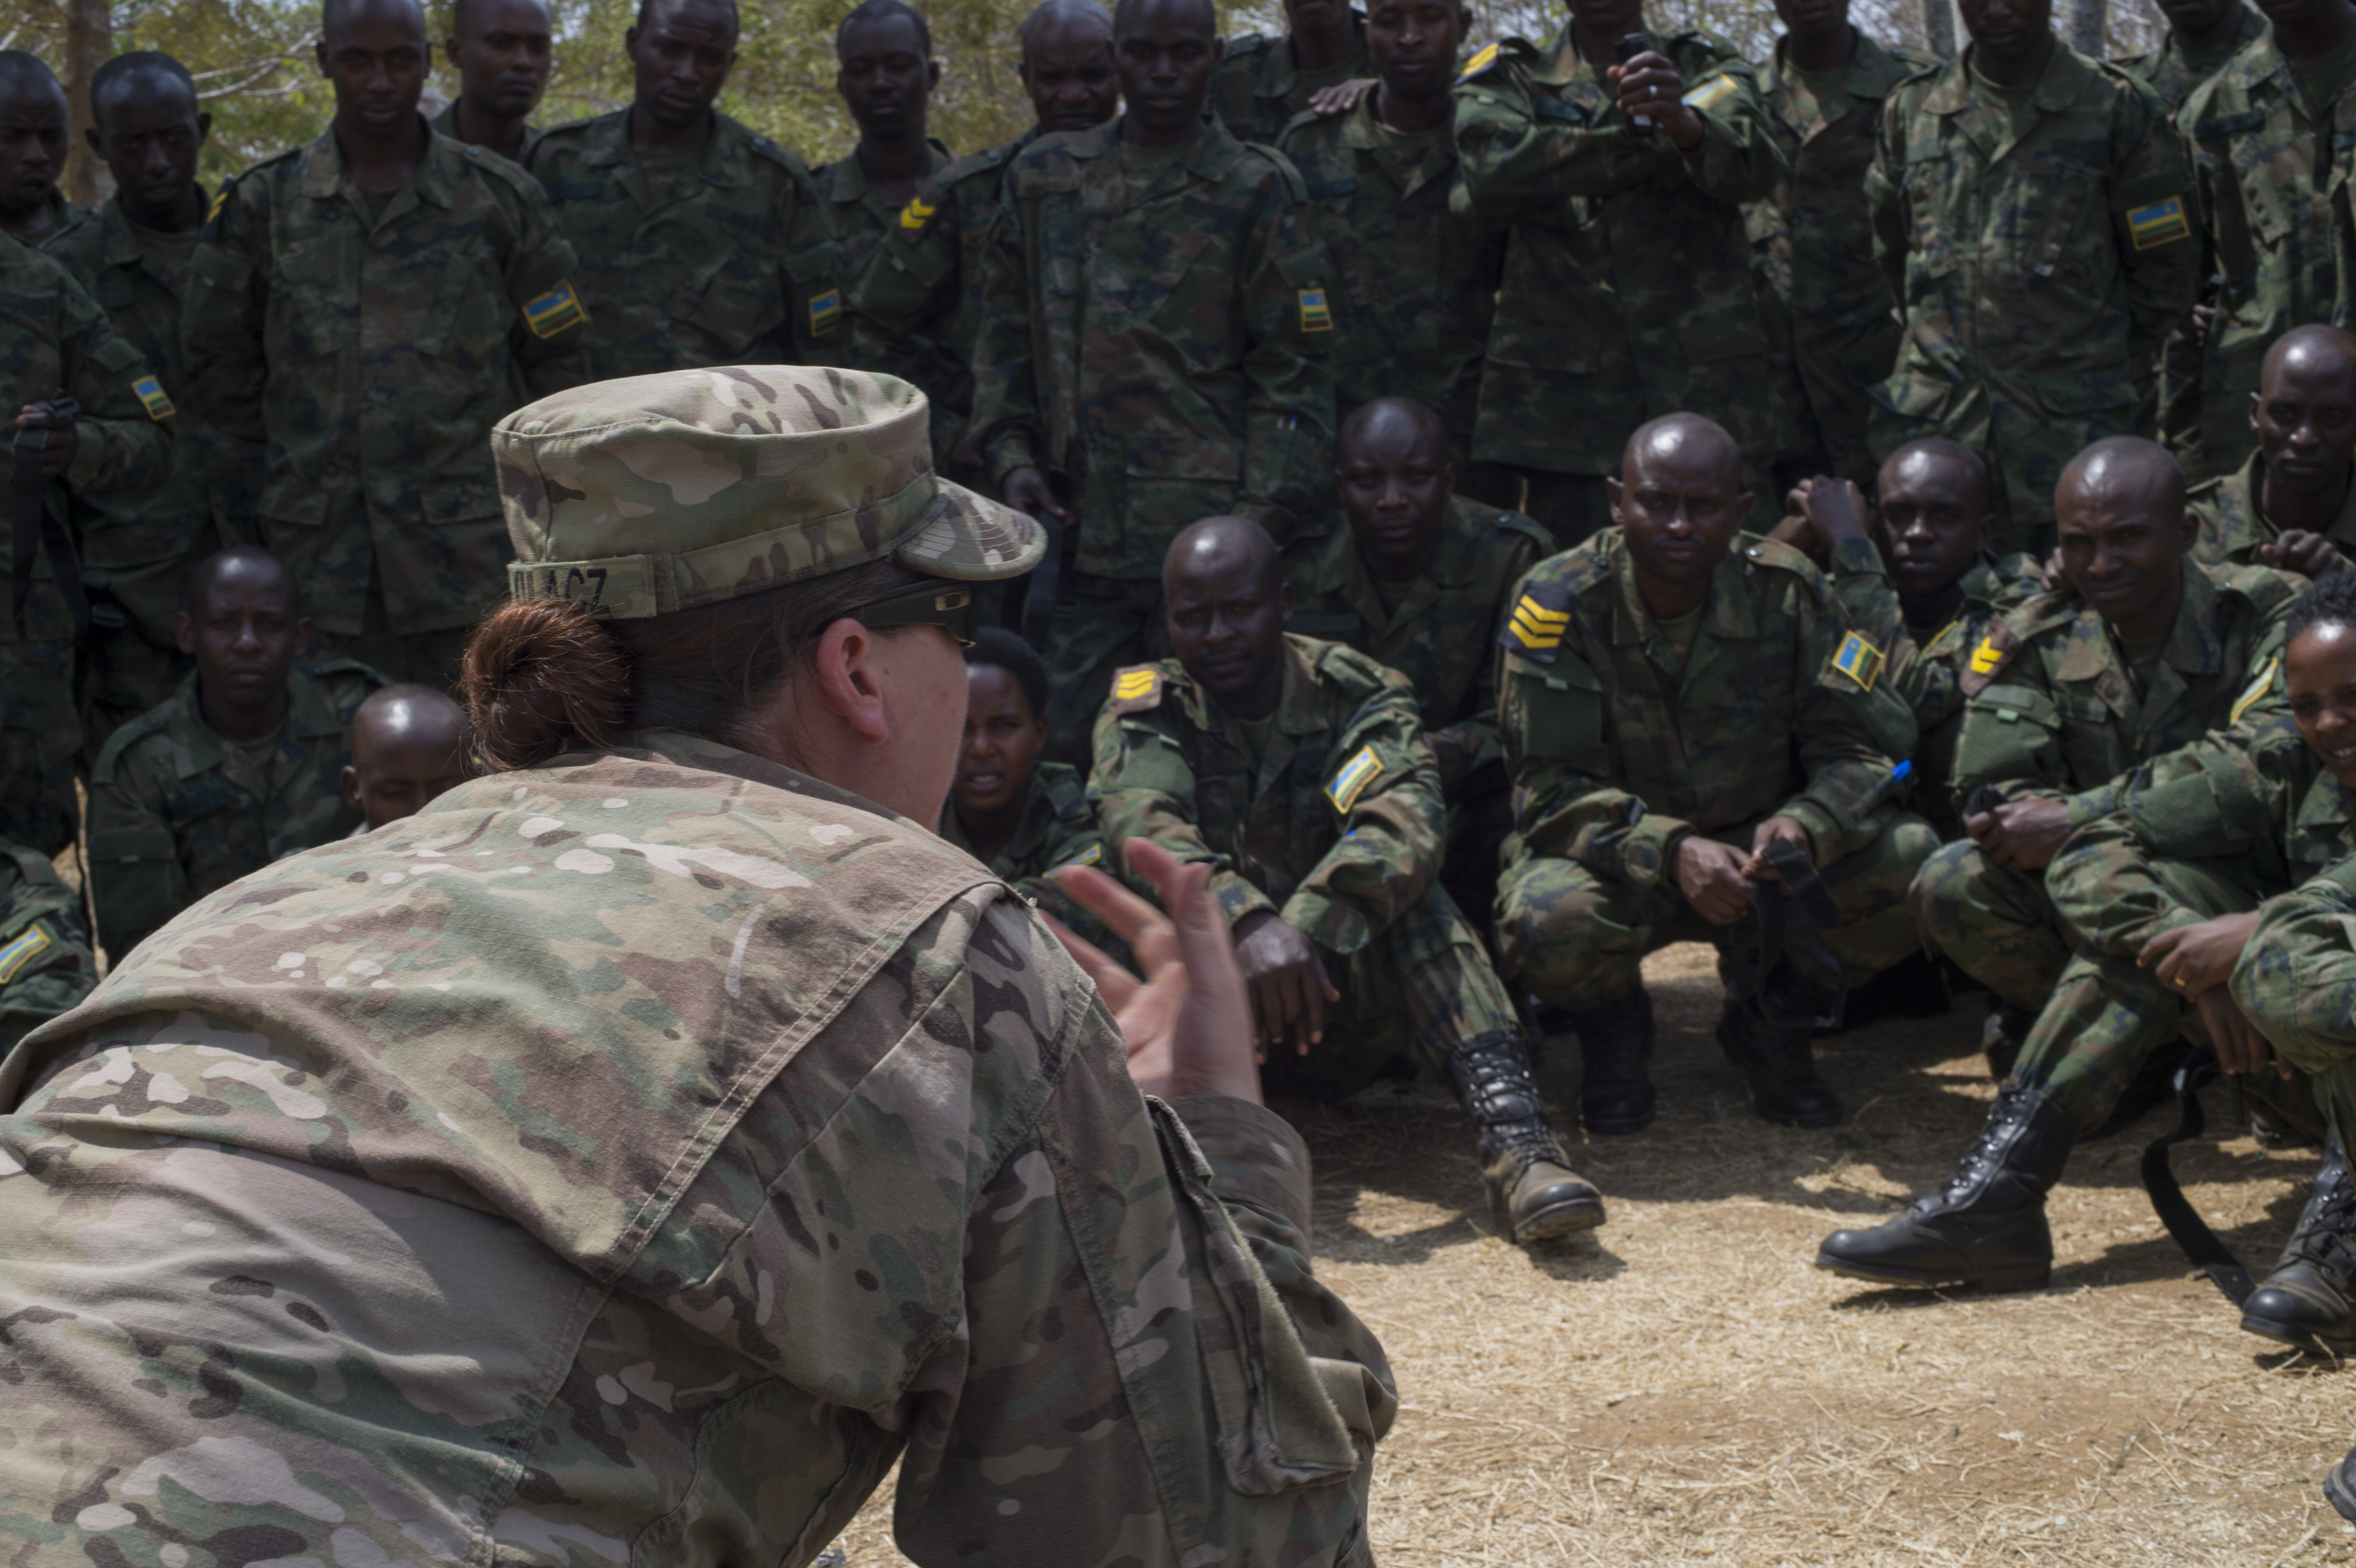 U.S. Army Sgt. Isabella Kulacz, 1st Battalion, 124th Infantry Regiment medic, instructs Rwanda Defense Force soldiers on controlling the airway during a two-week medical course Sept. 8, 2016, at Rwanda Military Academy, Rwanda. Kulacz and Sgt. Jonathan Lopez, both medics with the 1/124 Inf. Rgt., assigned to Combined Joint Task Force-Horn of Africa, taught the students techniques equivalent to the U.S. Army's Combat Lifesaver Skills course. (U.S. Air Force photo by Staff Sgt. Eric Summers Jr.)